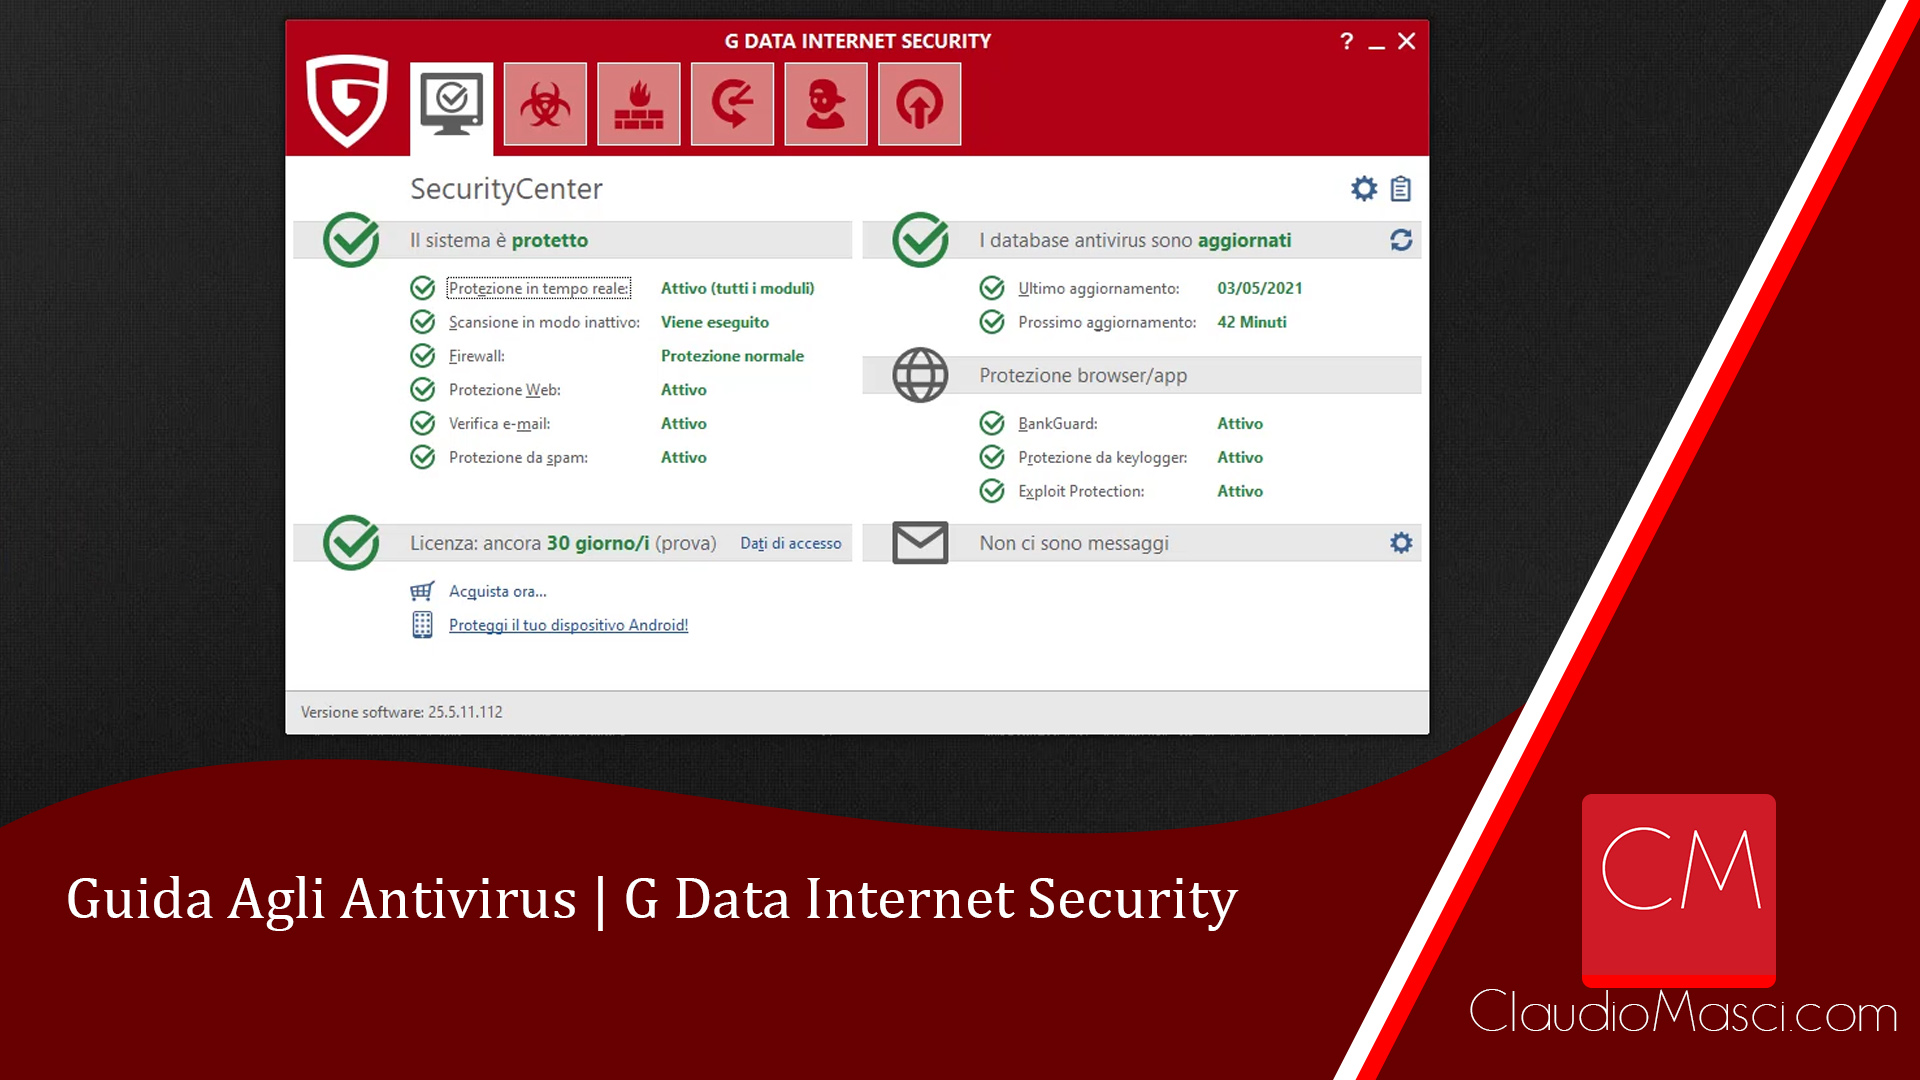 Guida Agli Antivirus | G Data Internet Security